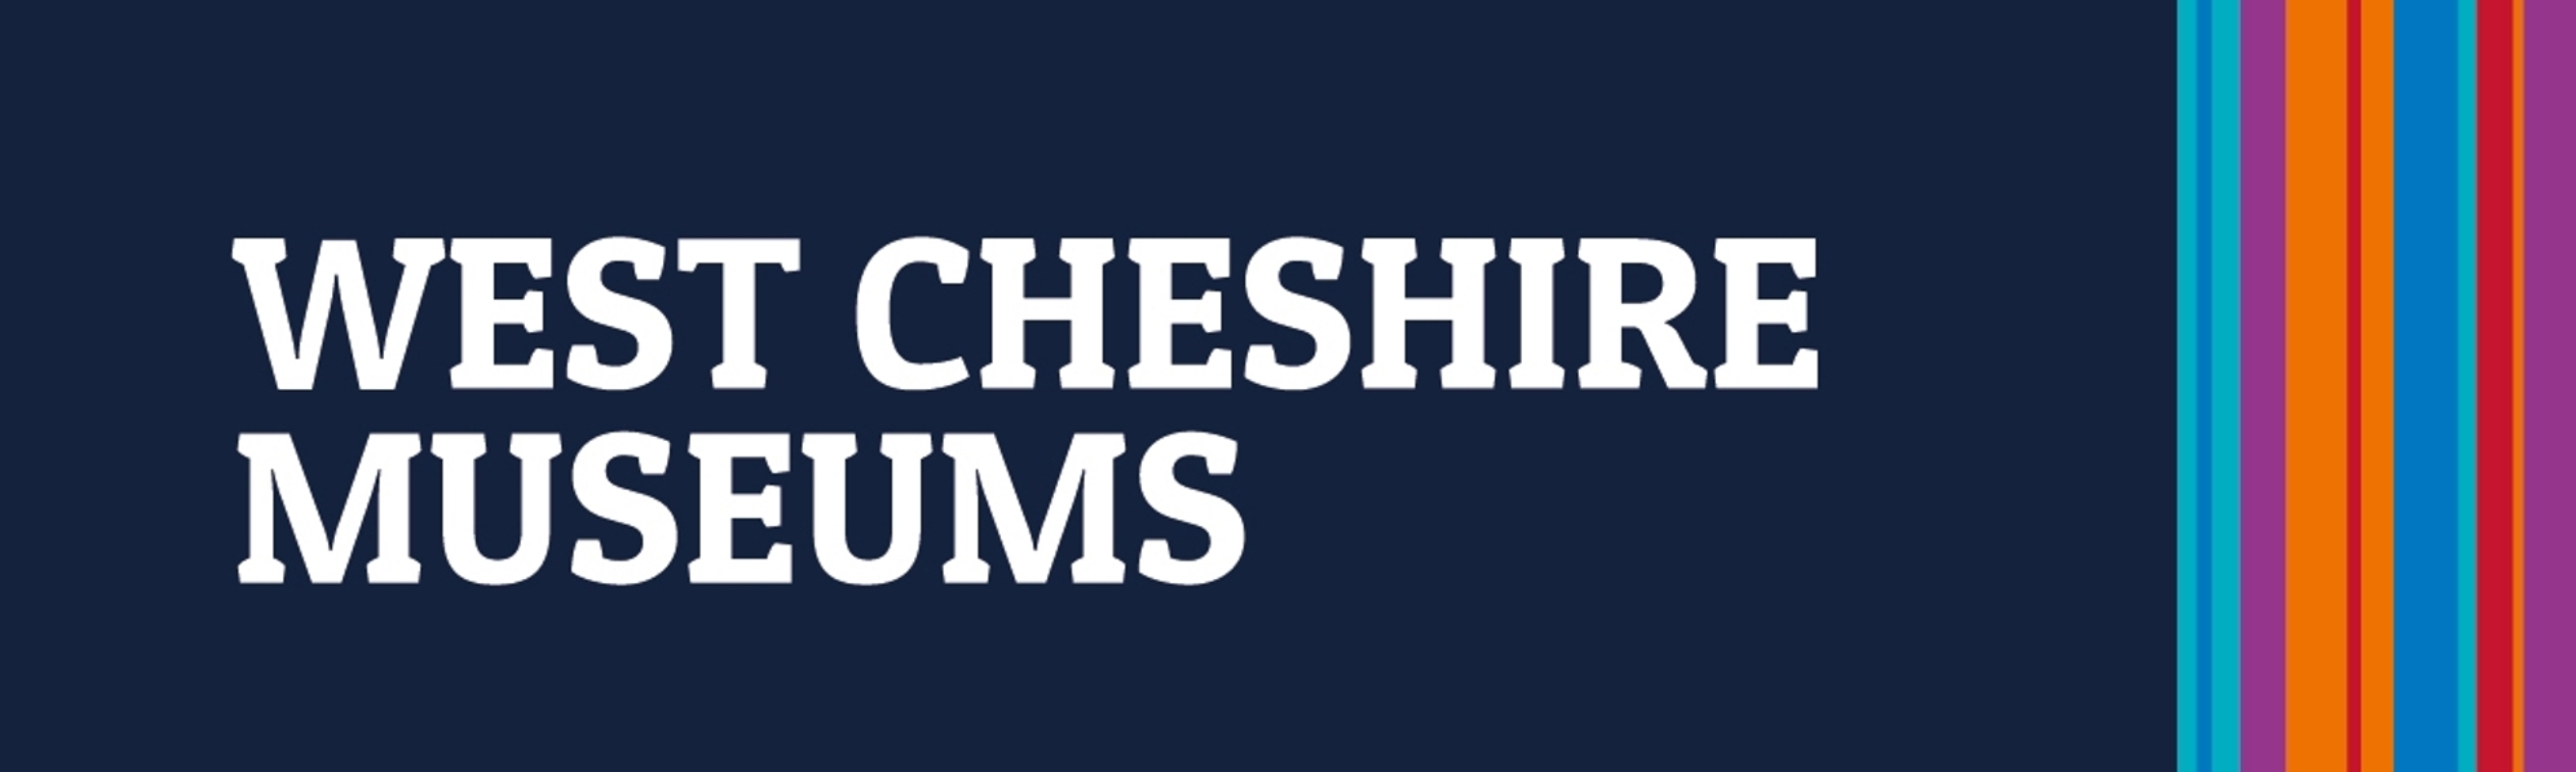 West Cheshire Musueums